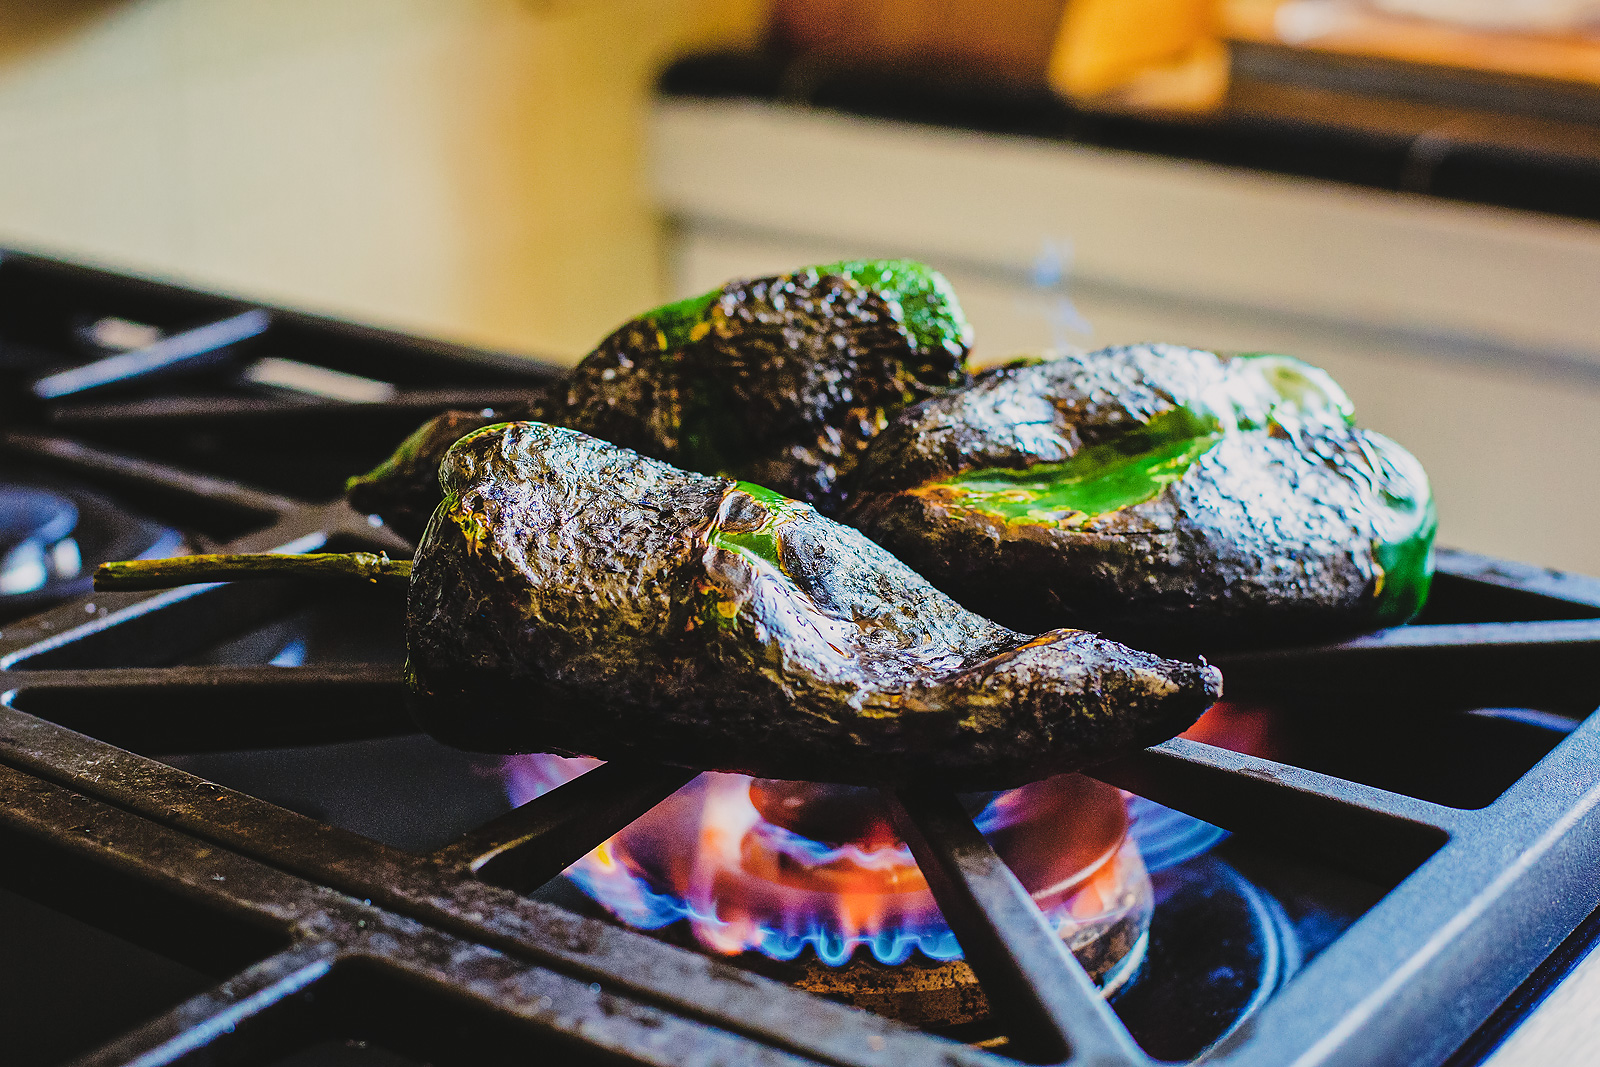 Three poblano peppers roasted directly on the grate of a gas stove.